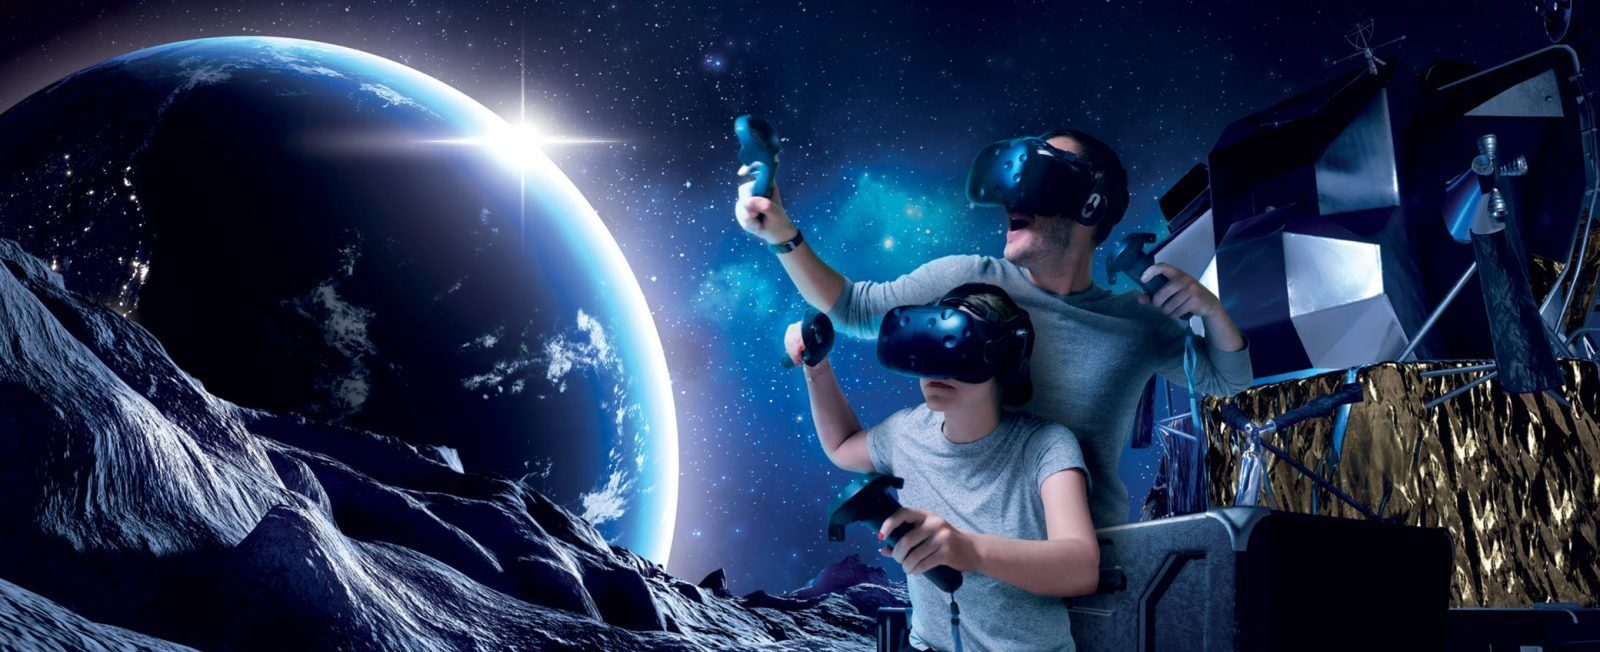 moon game blue earth people vr gaming fun